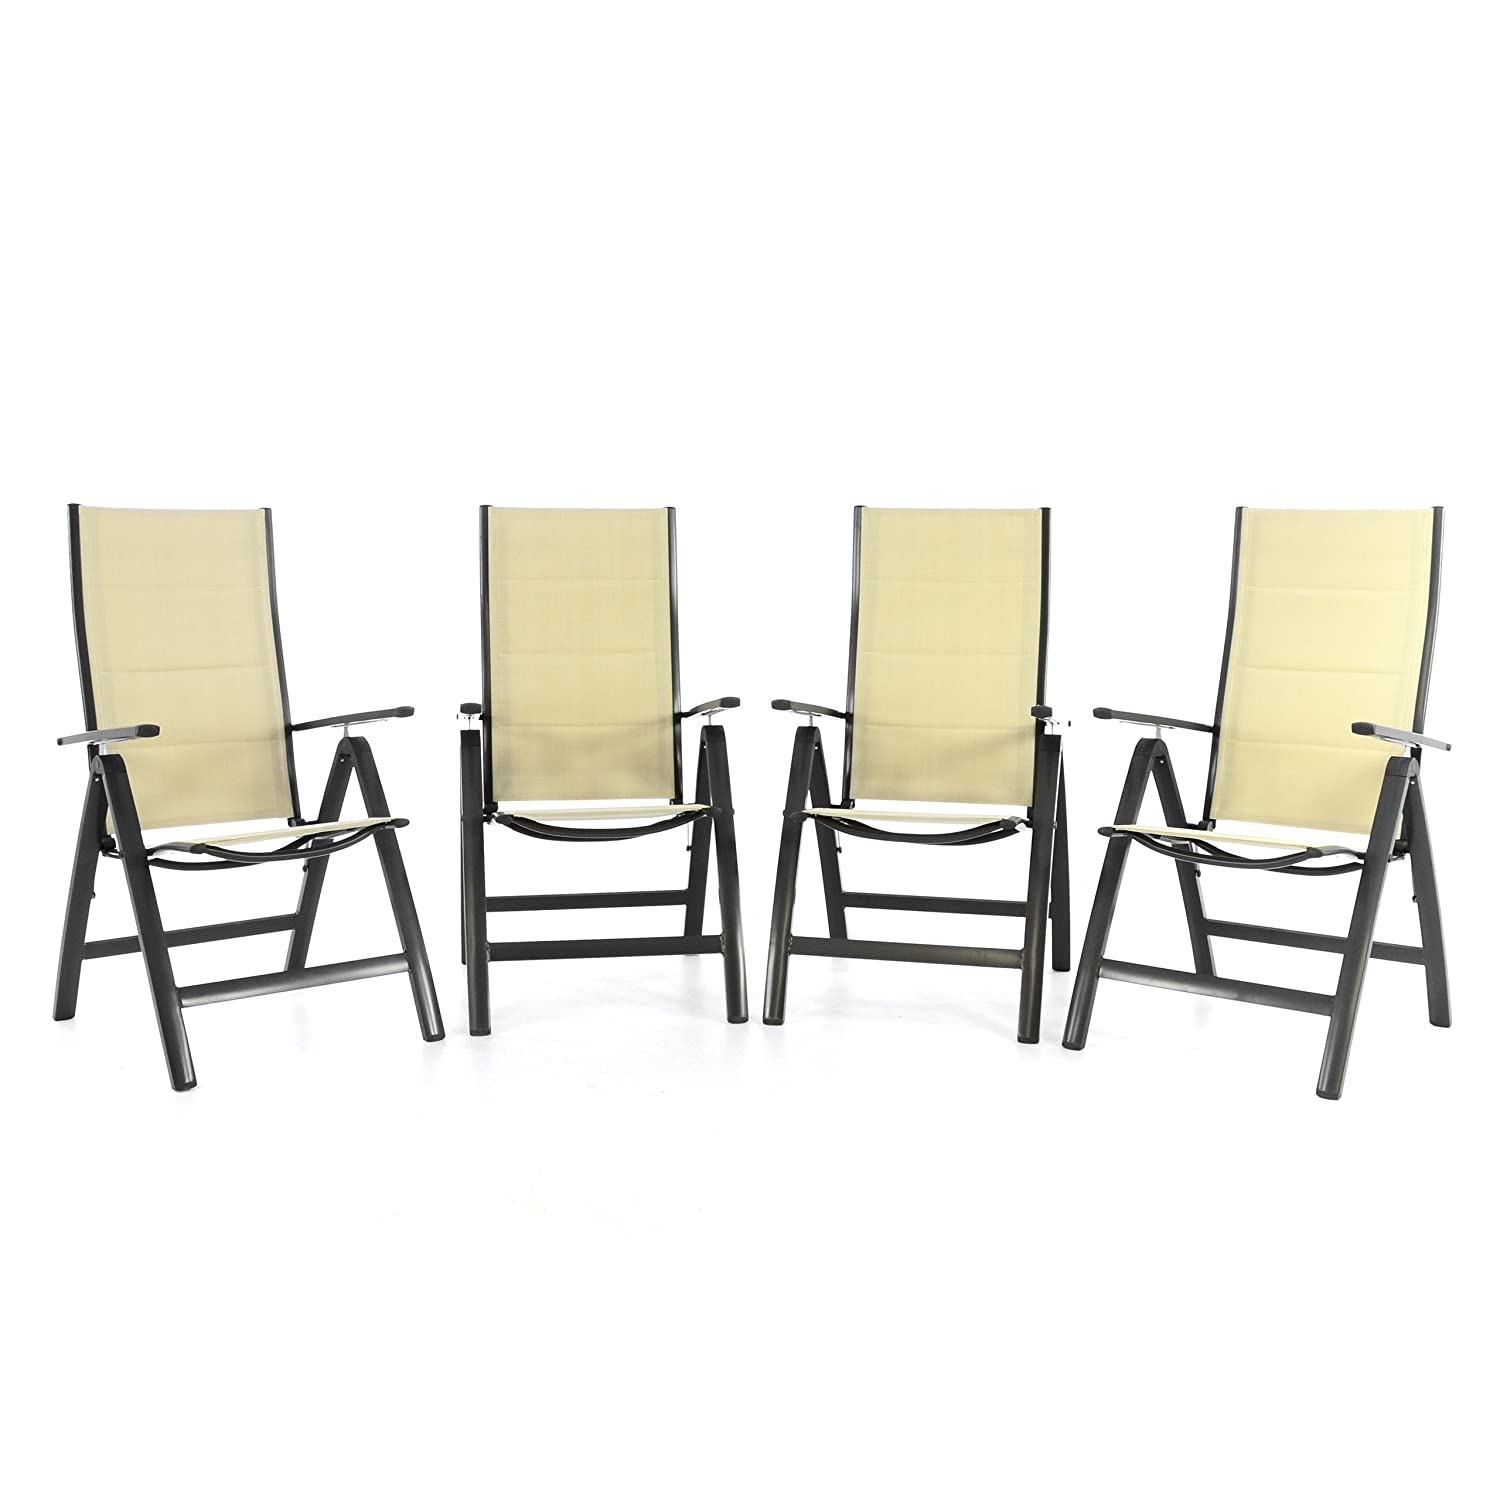 4er set klappstuhl deluxe alu gepolstert textilene creme gartenstuhl relaxstuhl campingstuhl. Black Bedroom Furniture Sets. Home Design Ideas